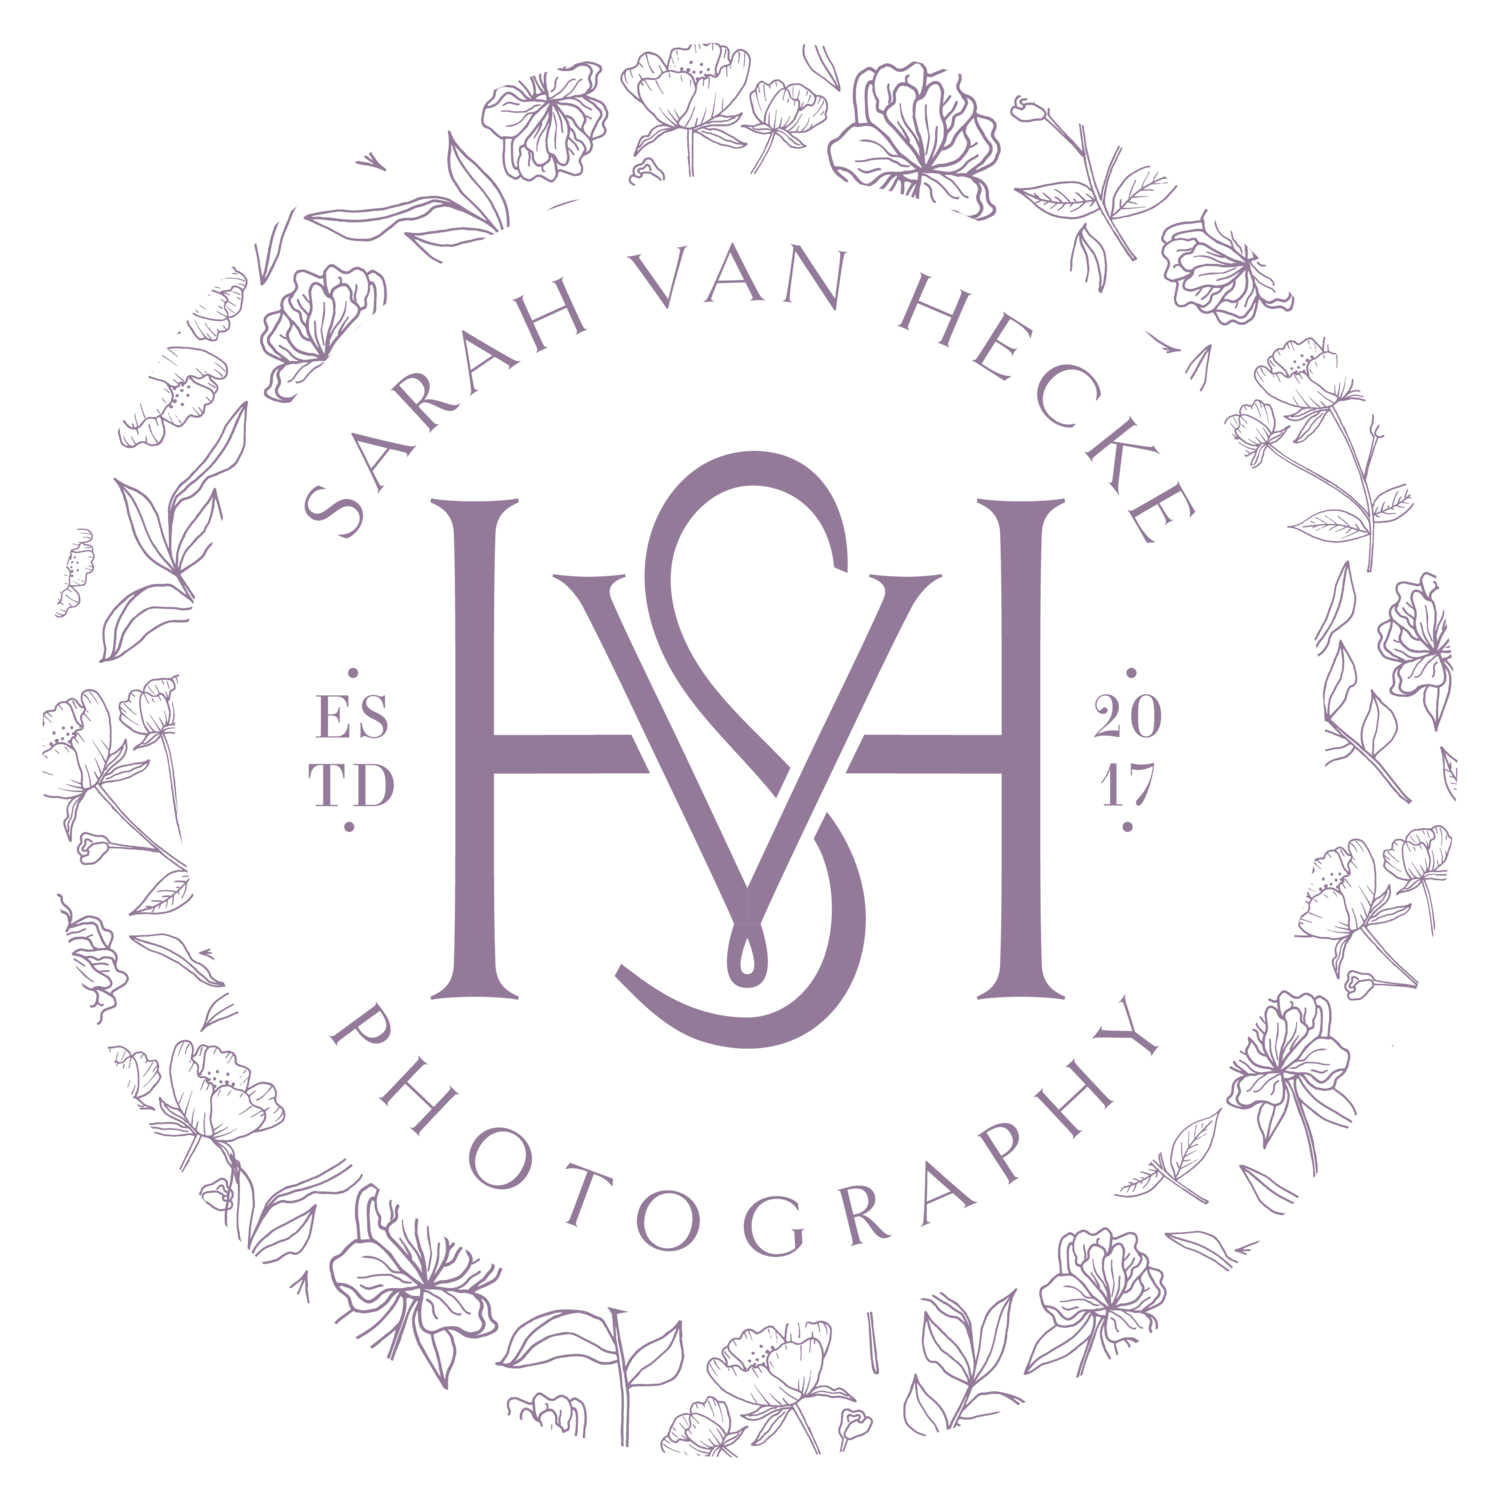 Sarah Van Hecke Photography